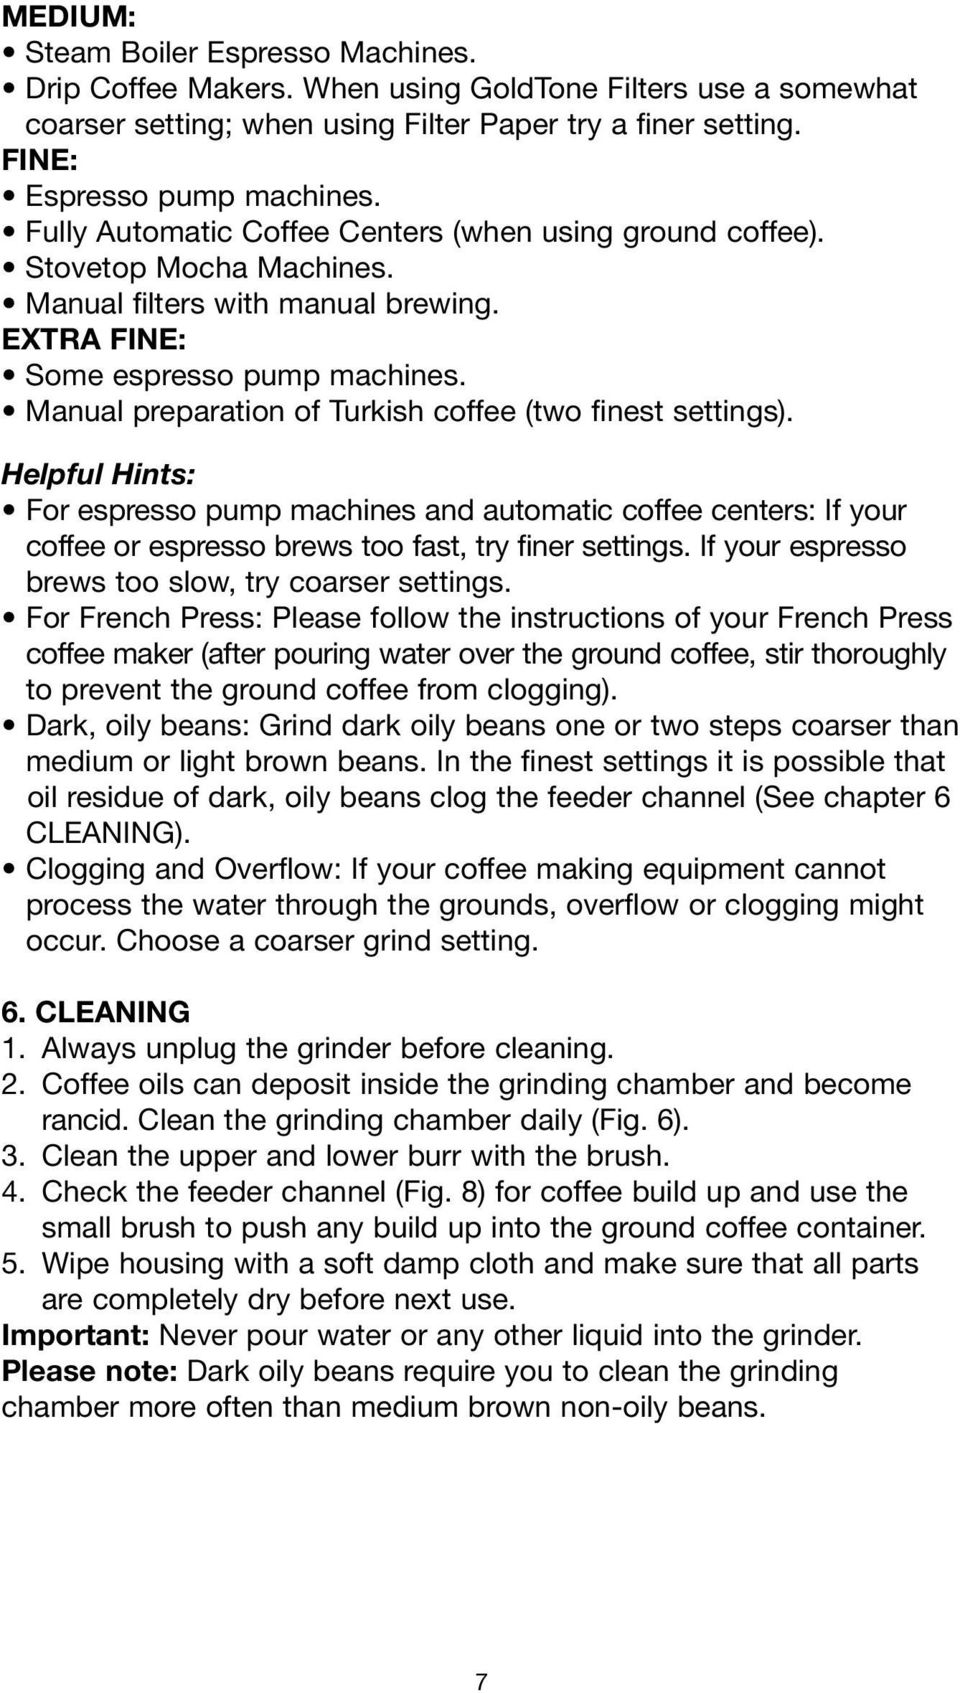 Manual preparation of Turkish coffee (two finest settings). Helpful Hints: For espresso pump machines and automatic coffee centers: If your coffee or espresso brews too fast, try finer settings.